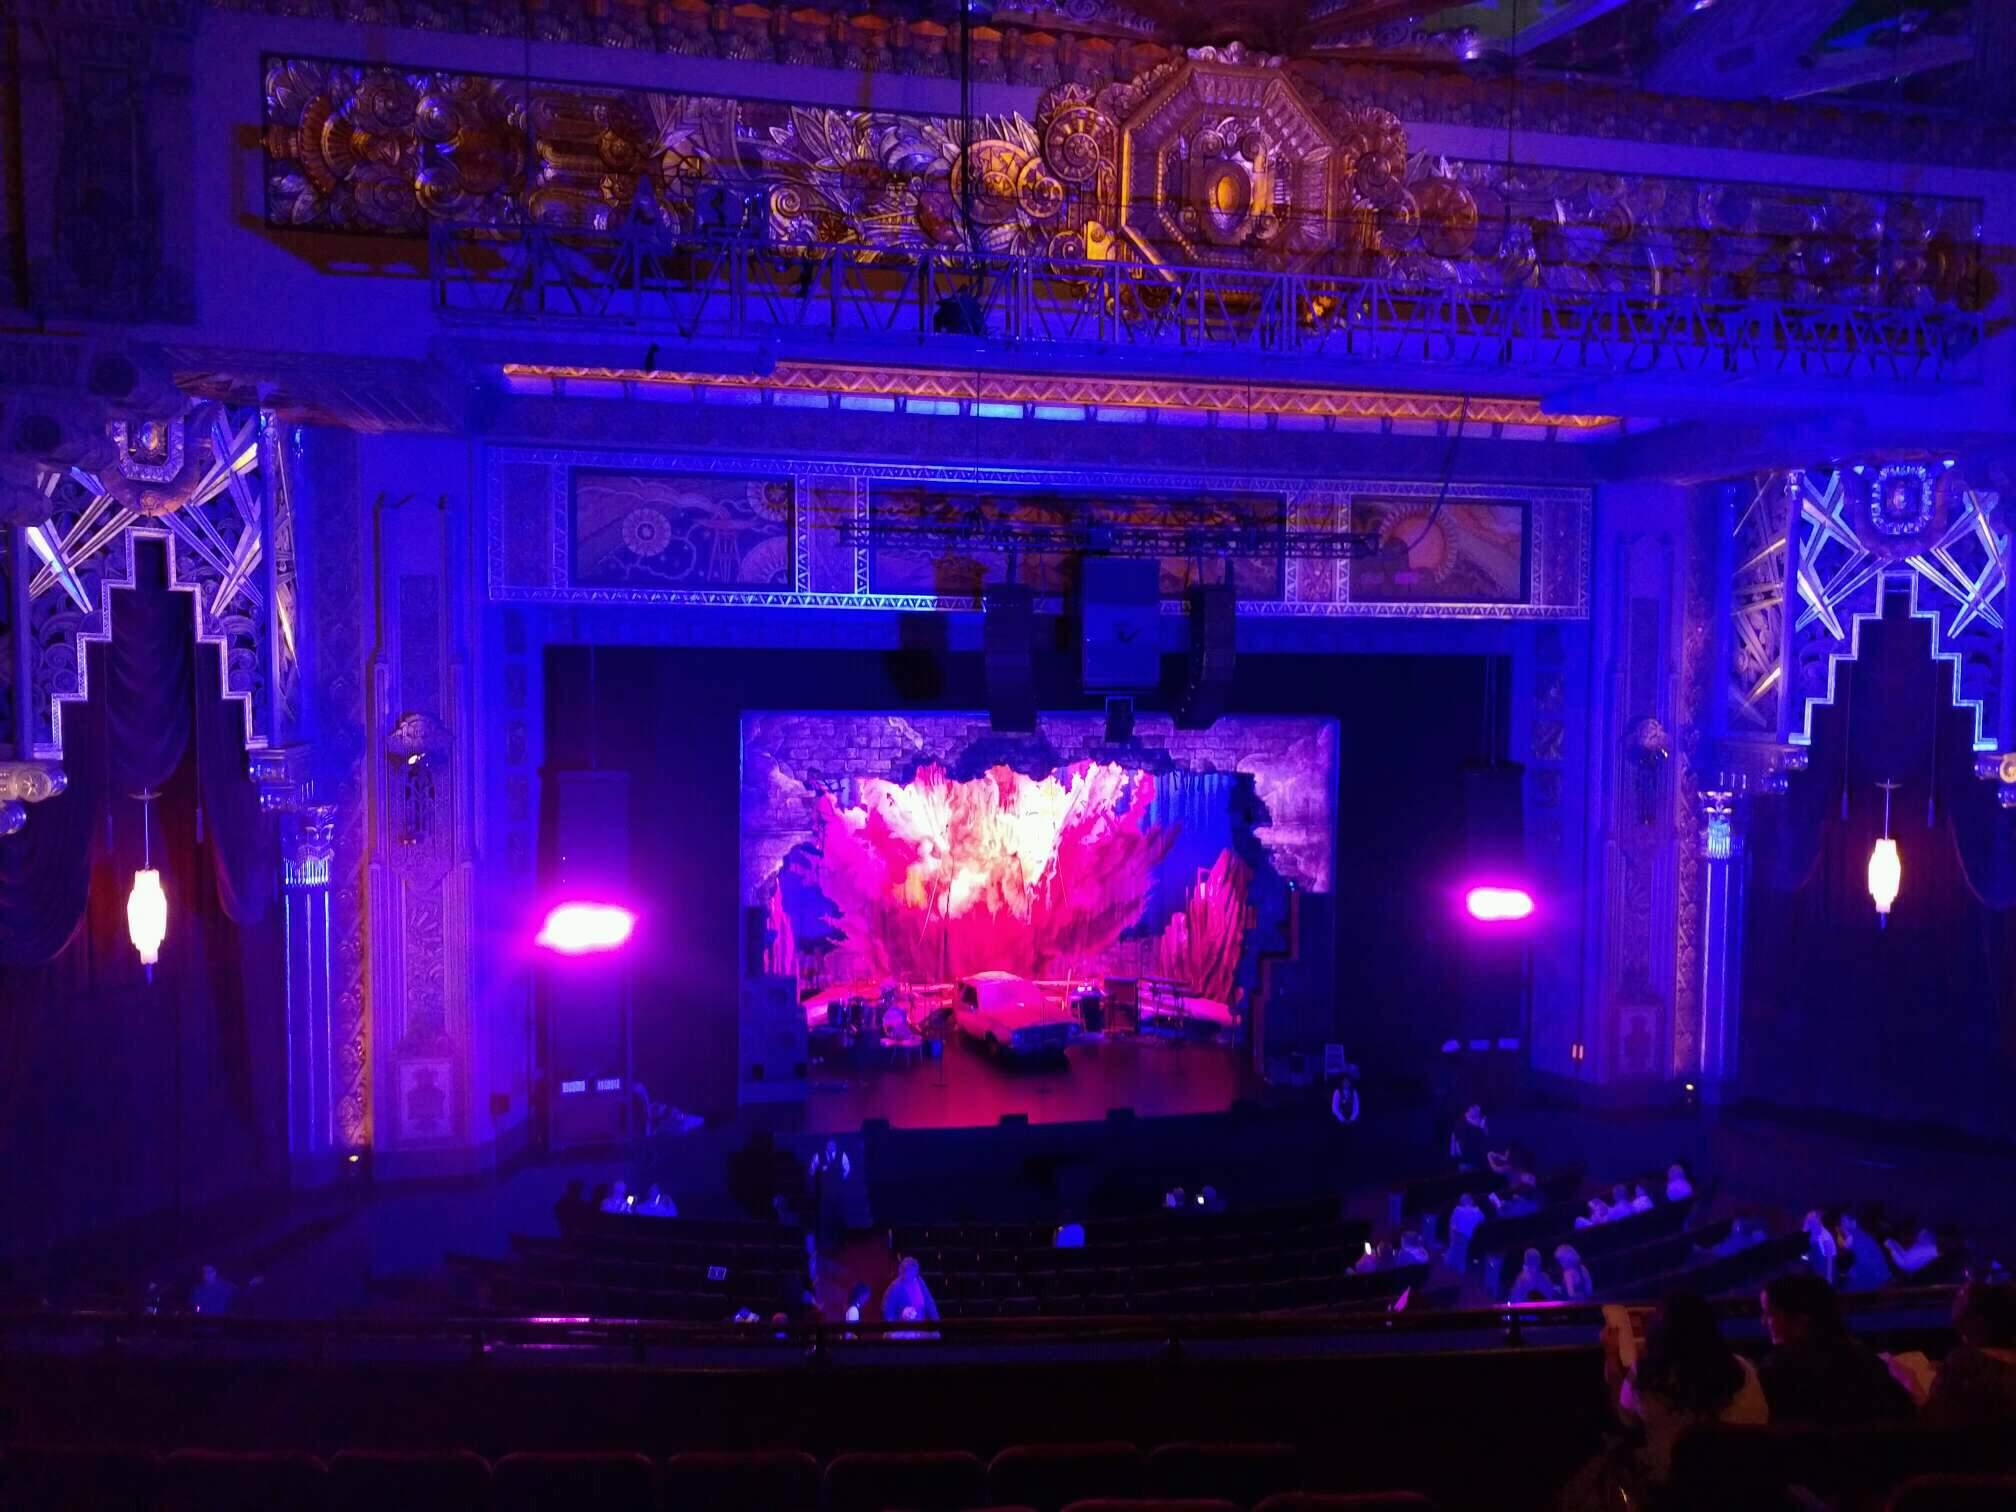 Hollywood Pantages Theatre Section Mezzanine LC Row h Seat 304